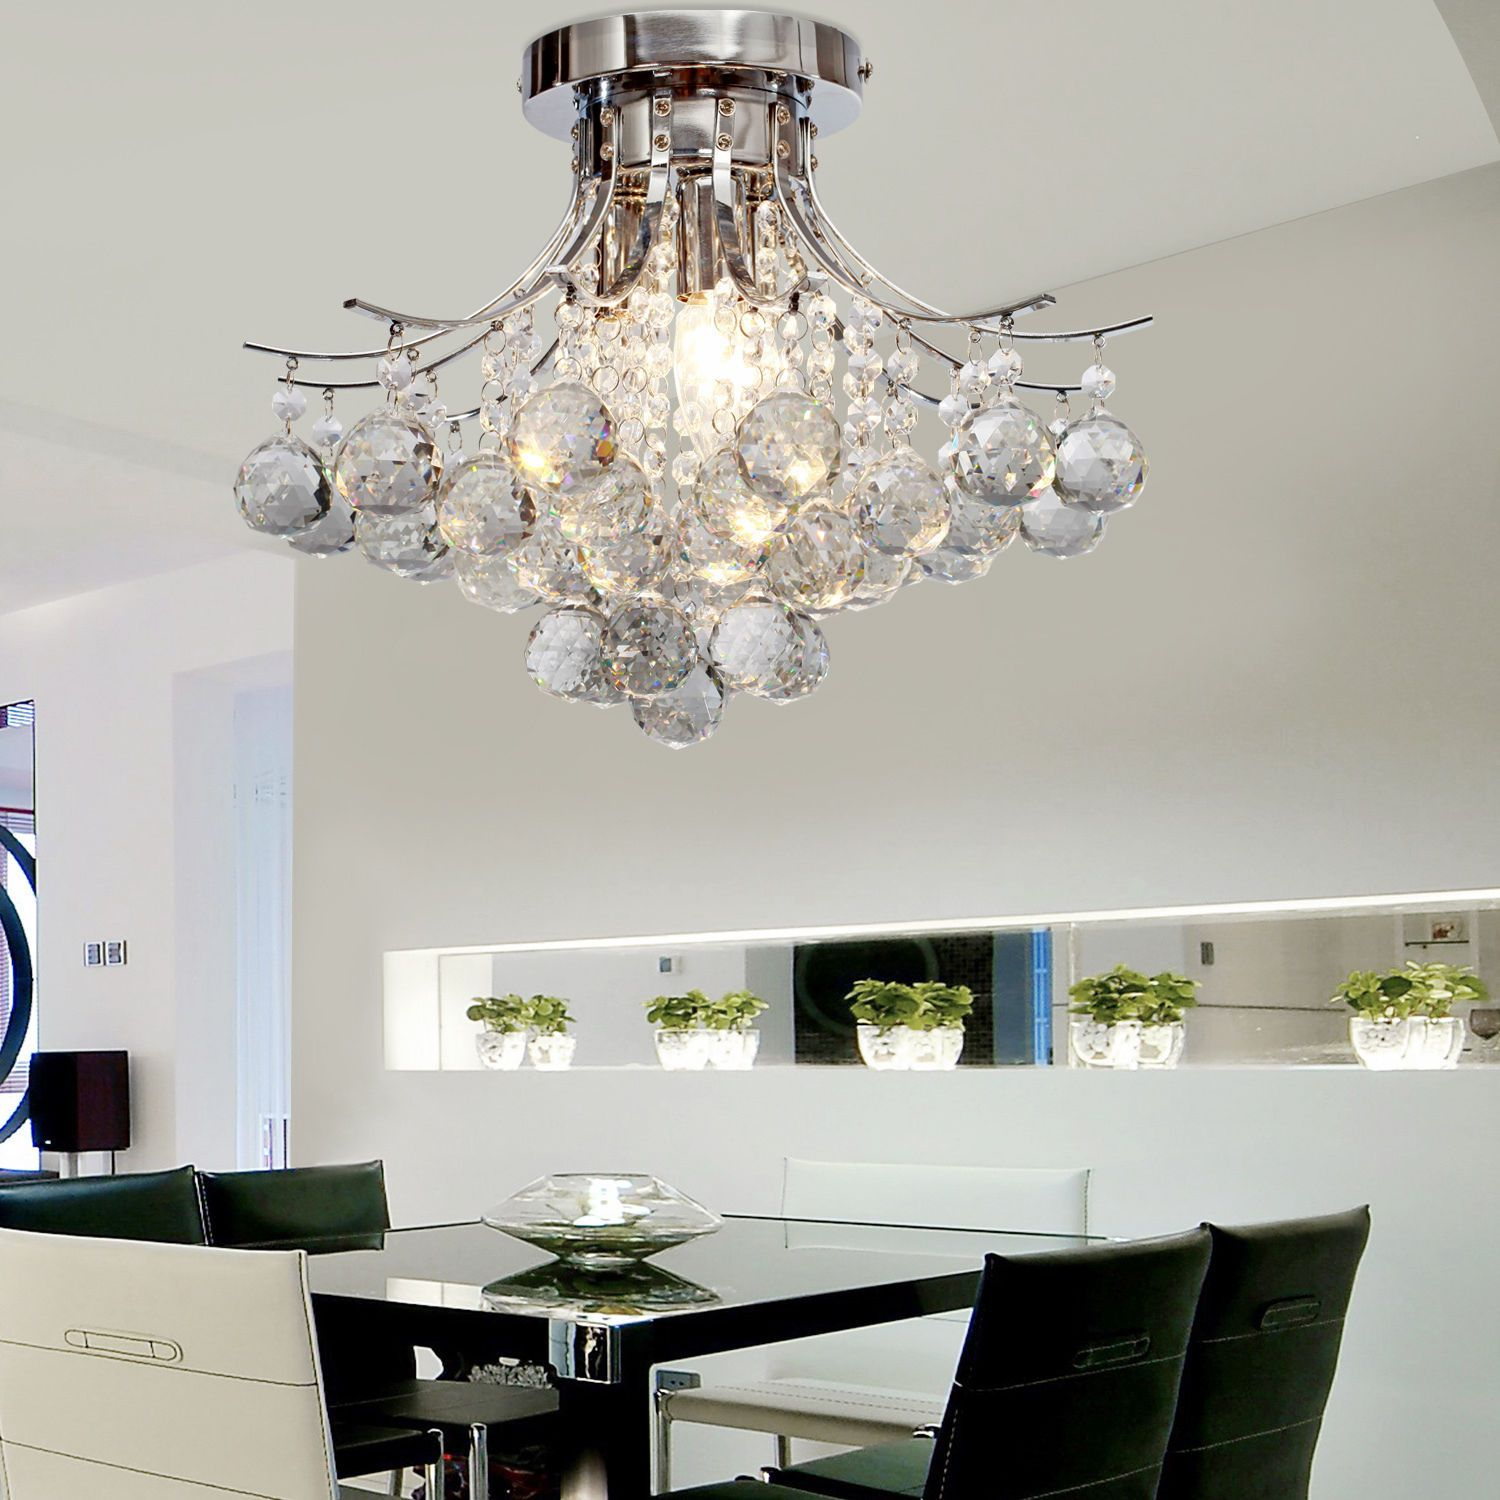 LOCO Modern Crystal Chandelier with 6 Lights Modern Ceiling Light